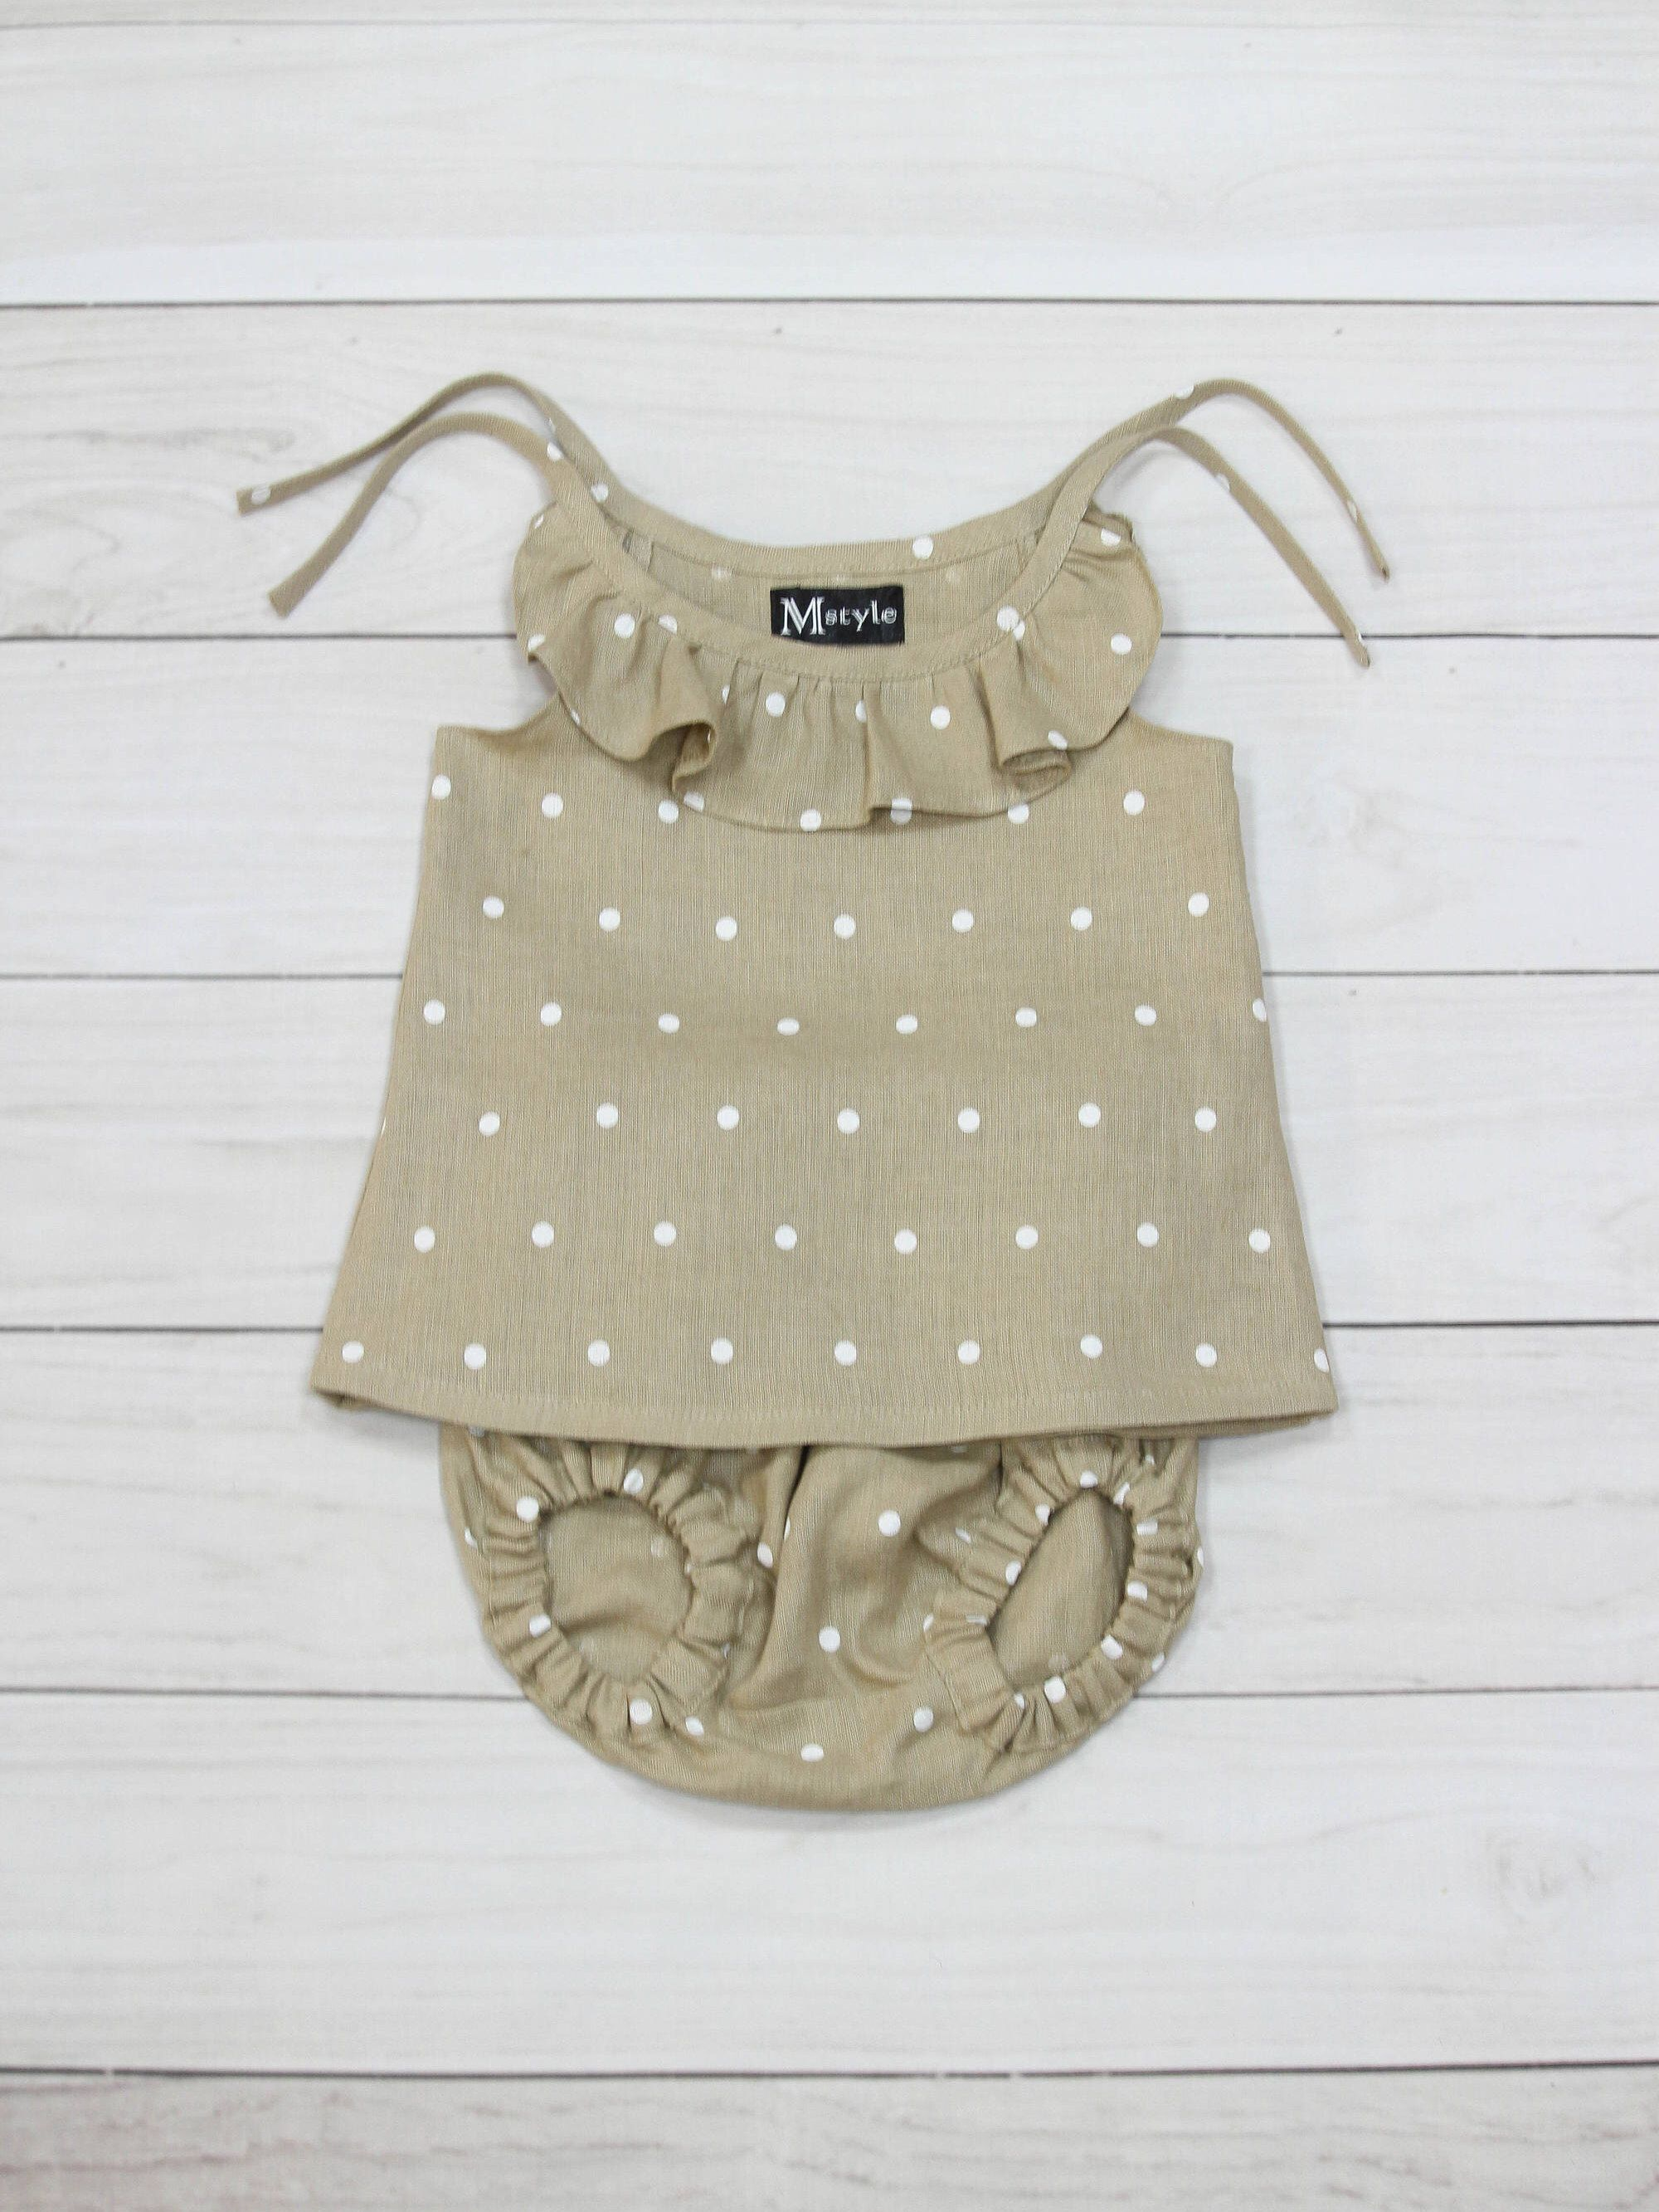 Pin by MstyleClothing on •Baby fashion• Pinterest